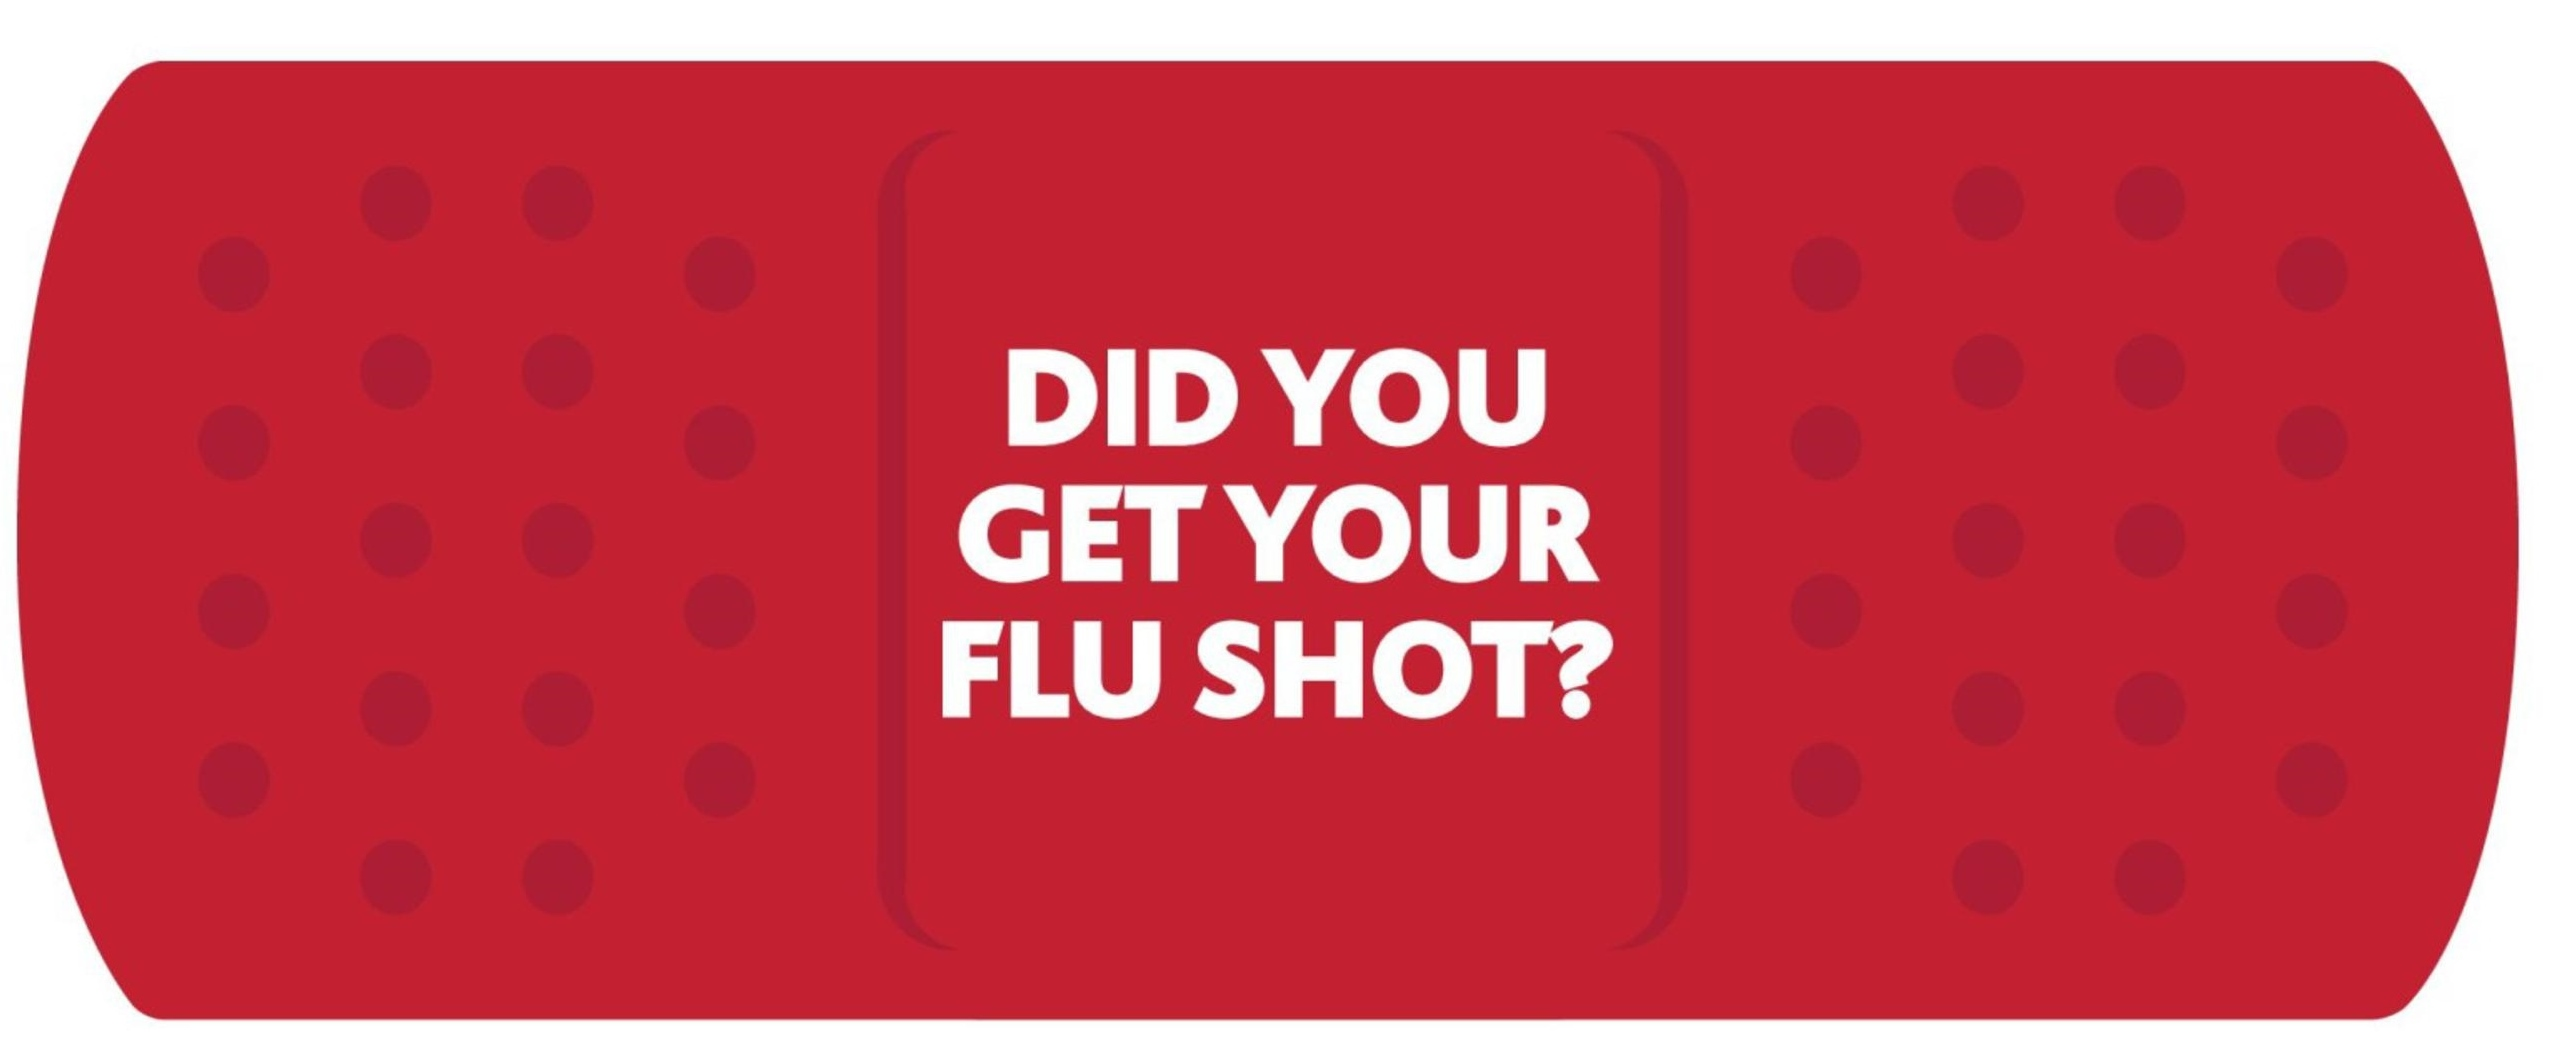 Get Your Flu Shot Now recommend